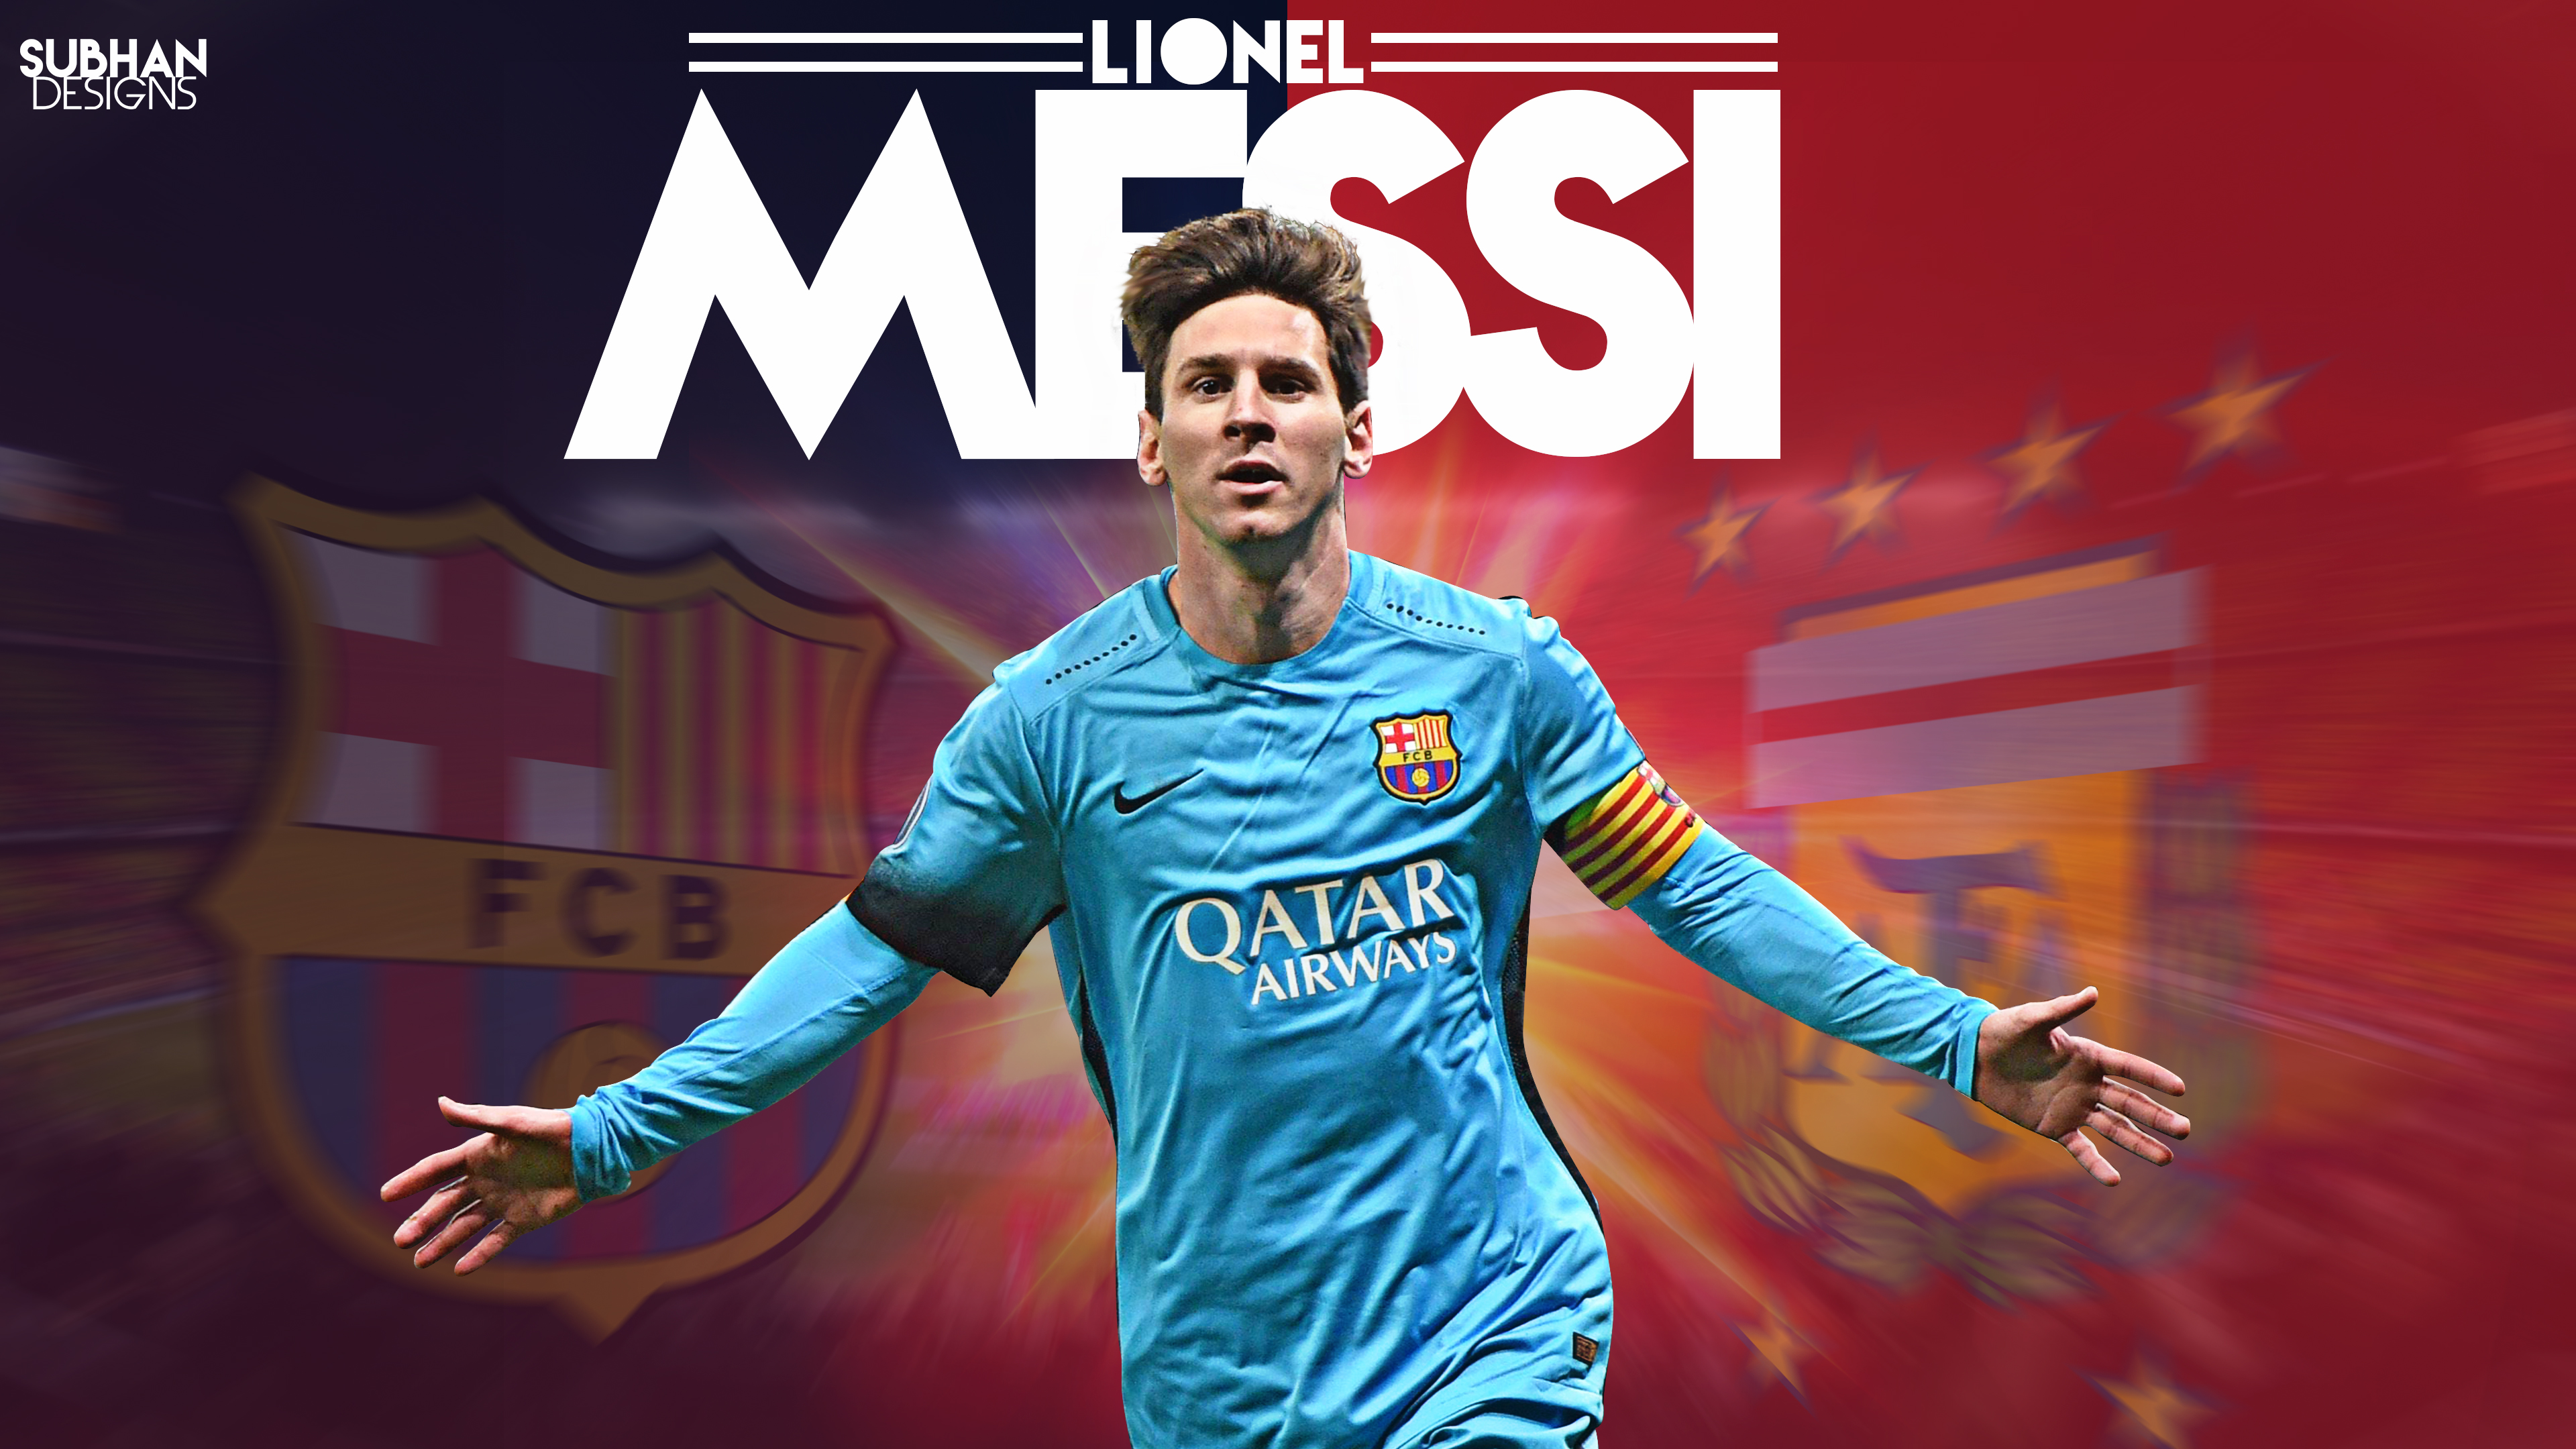 lionel messi 2016 wallpaper 4k by subhan22 on deviantart